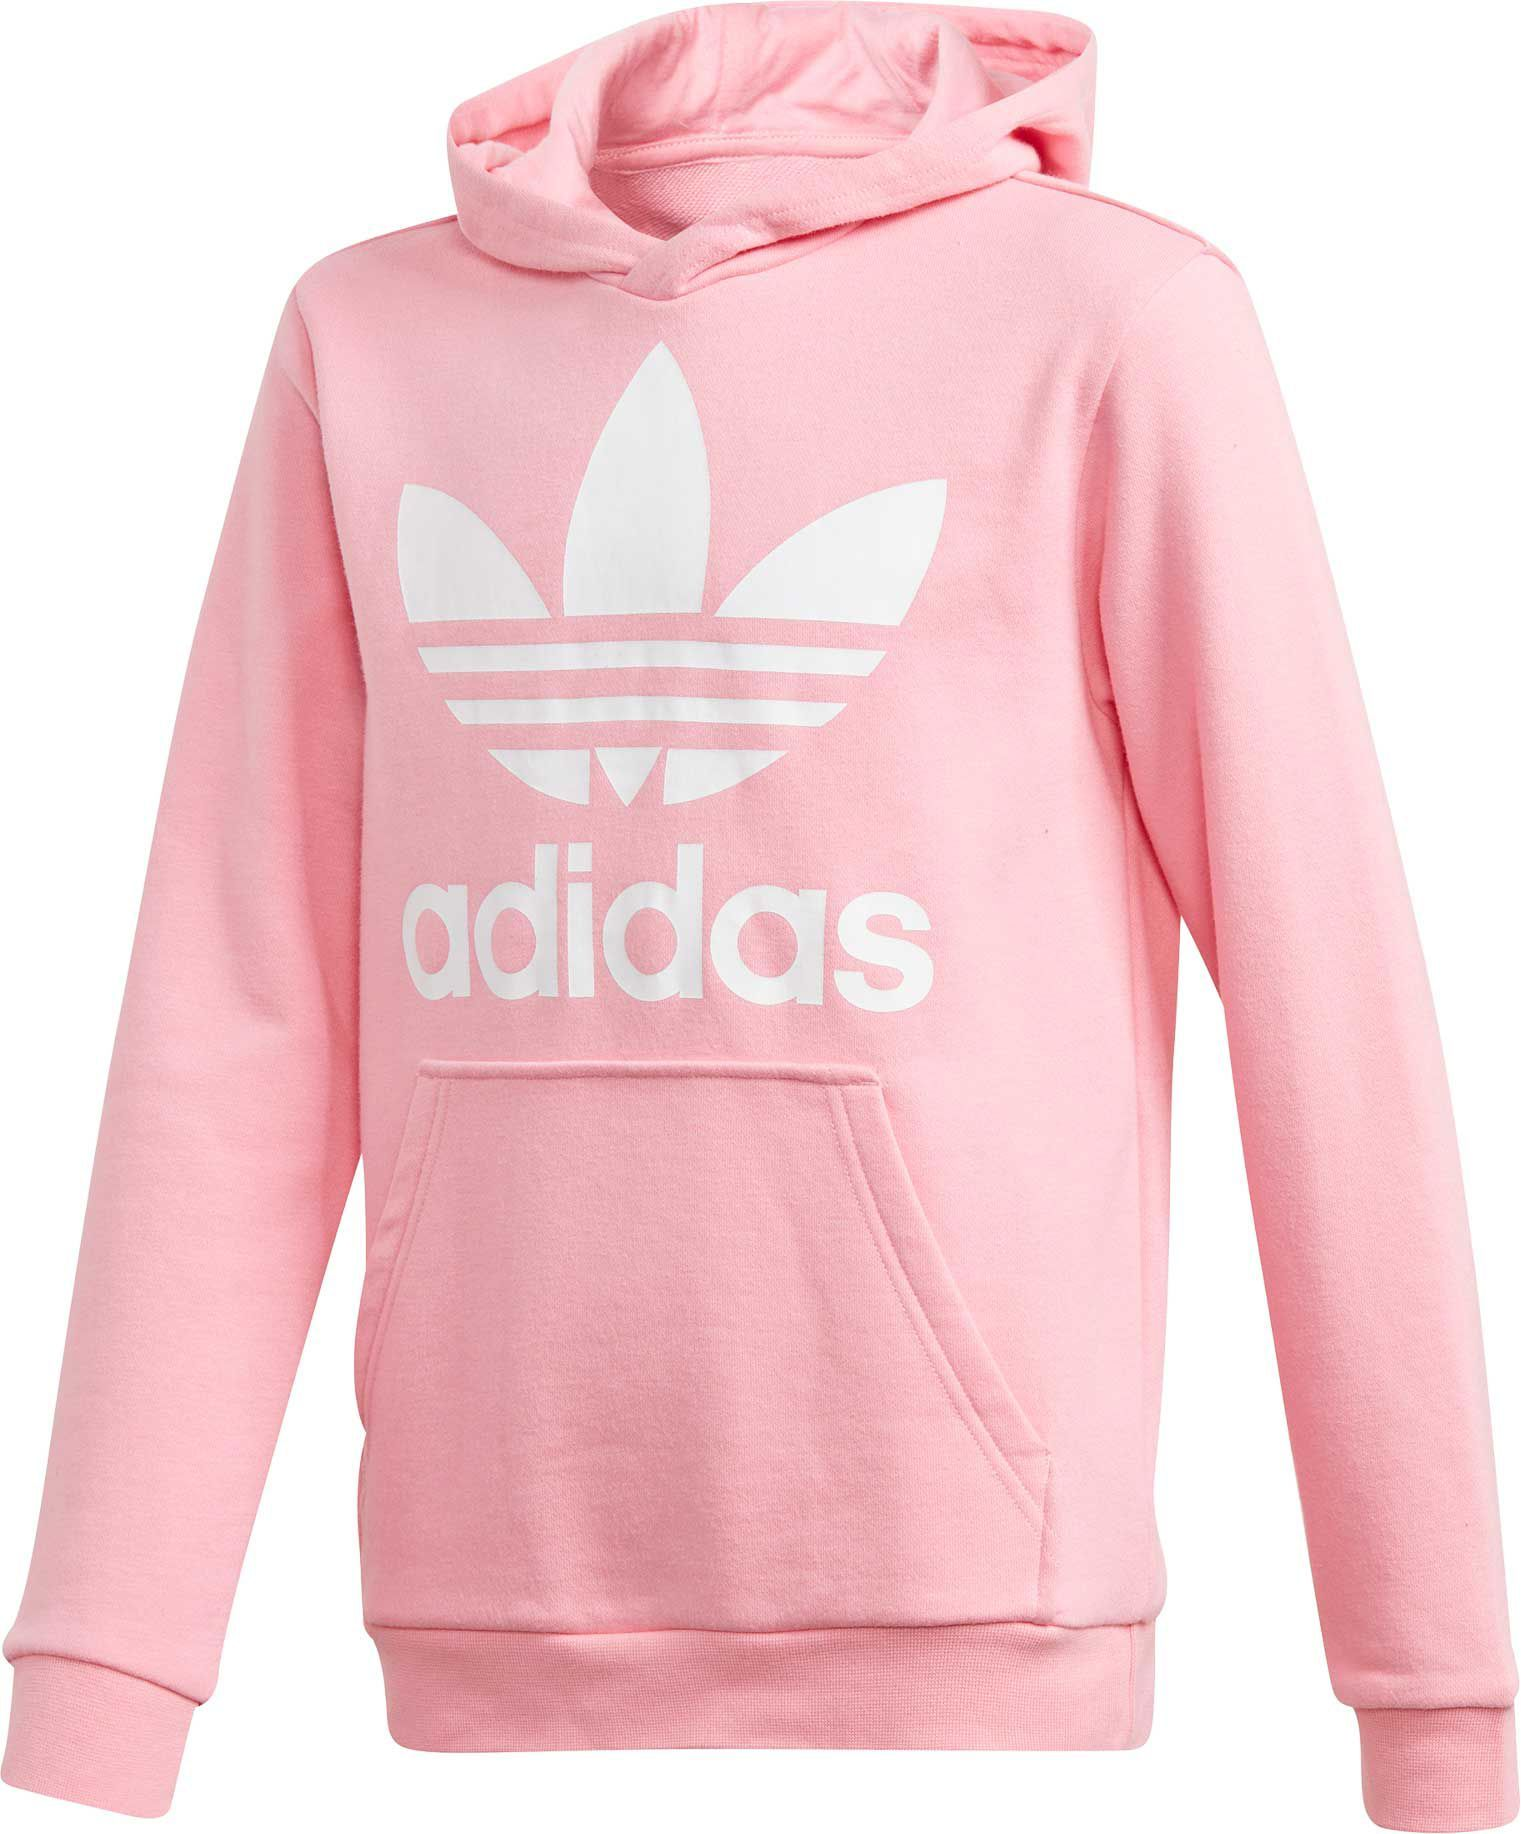 shop best sellers best shoes autumn shoes adidas Originals Girls' Trefoil Hoodie, Light Pink/White in ...